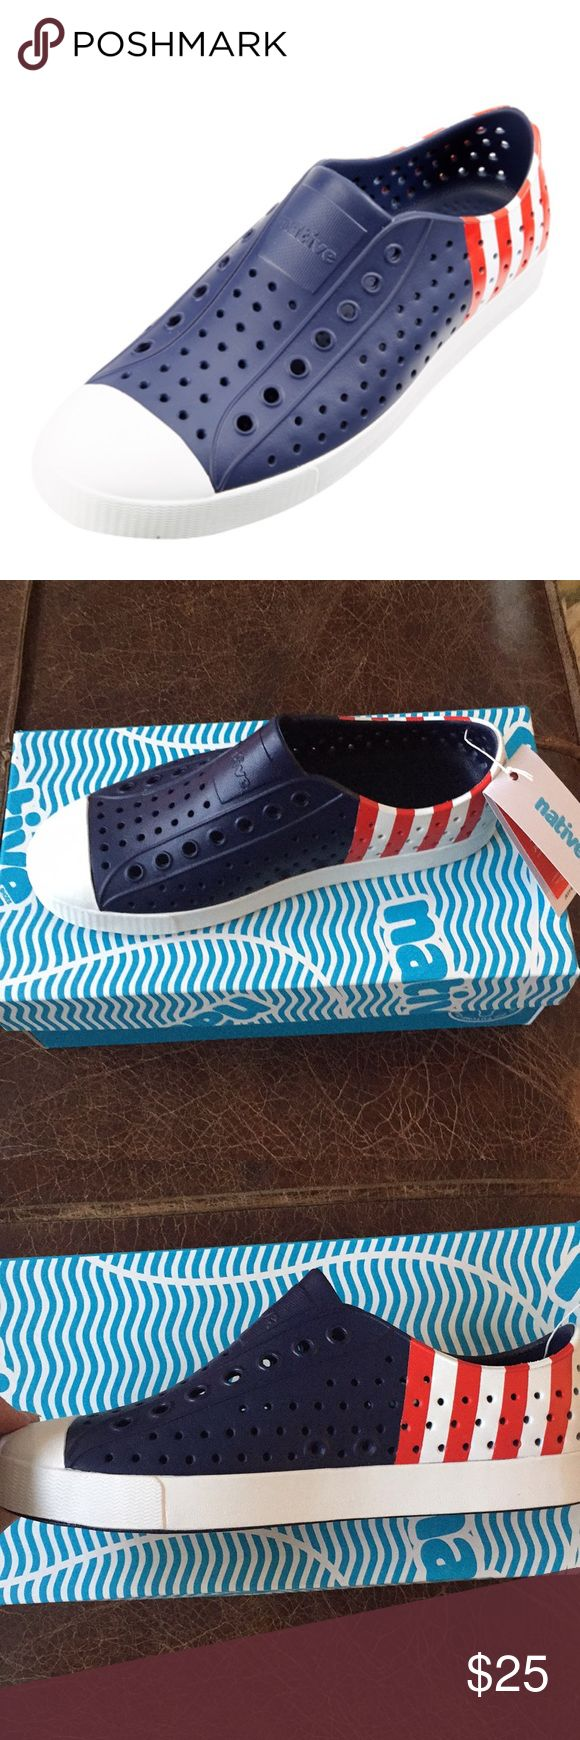 Native Jefferson Block water shoe W 8 M 6 Injection molded EVA construction. Rubber rand and toe. Details Unisex water shoe. Perforated upper for breathability. Beast free—made without animal parts (Vegan approved). Shock absorbent. Hand washable. Odor resistant. Mondo lightweight. Country of Origin Imported. Women's size 8 men's size 6 New with box Native Shoes